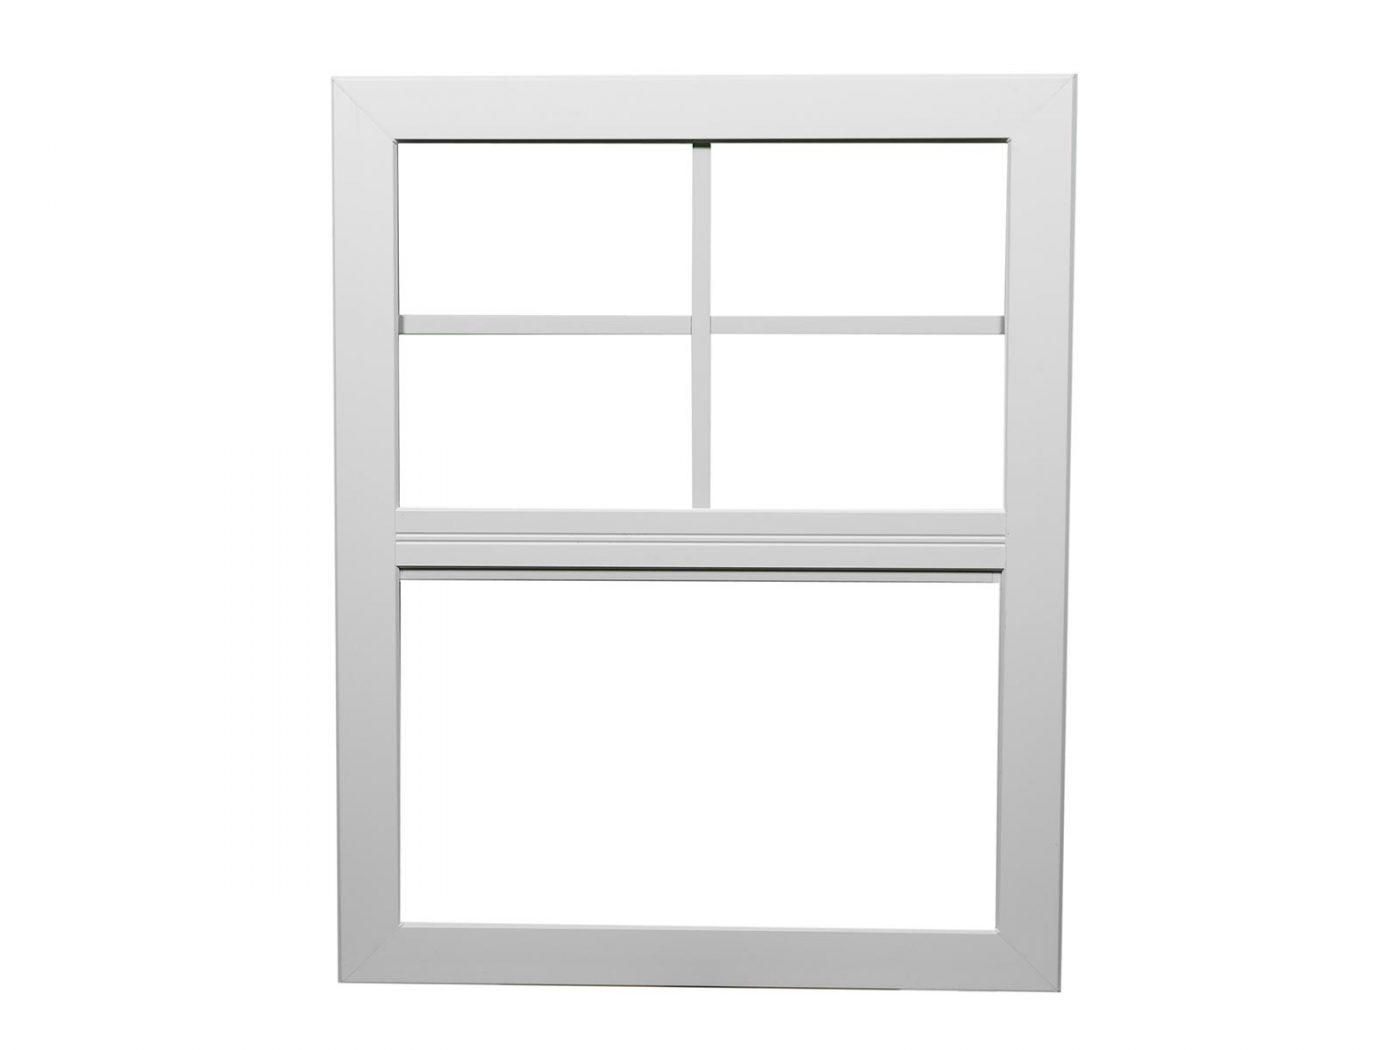 Signature series single hung window installation seattle